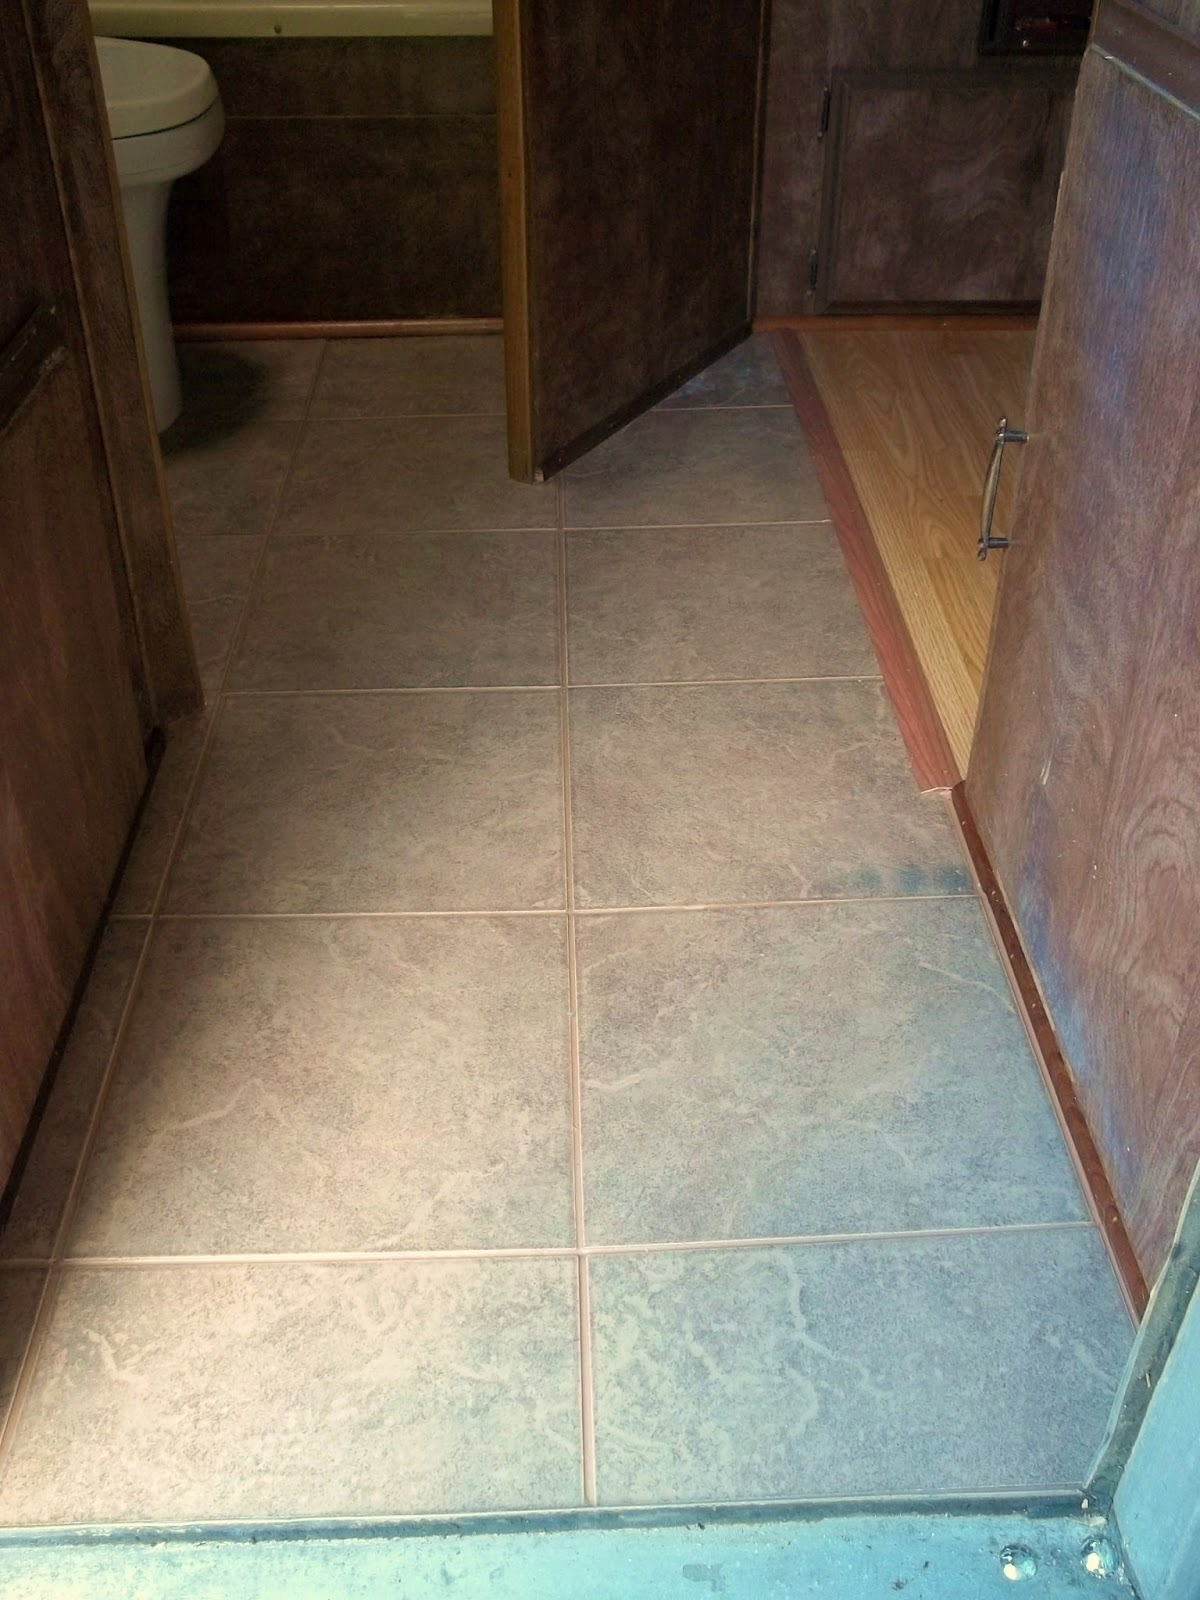 Just camping out our rotted camper floor new tile to the rescue porcelain tile fixes rotten floor in our 1980 shasta camp trailer dailygadgetfo Choice Image